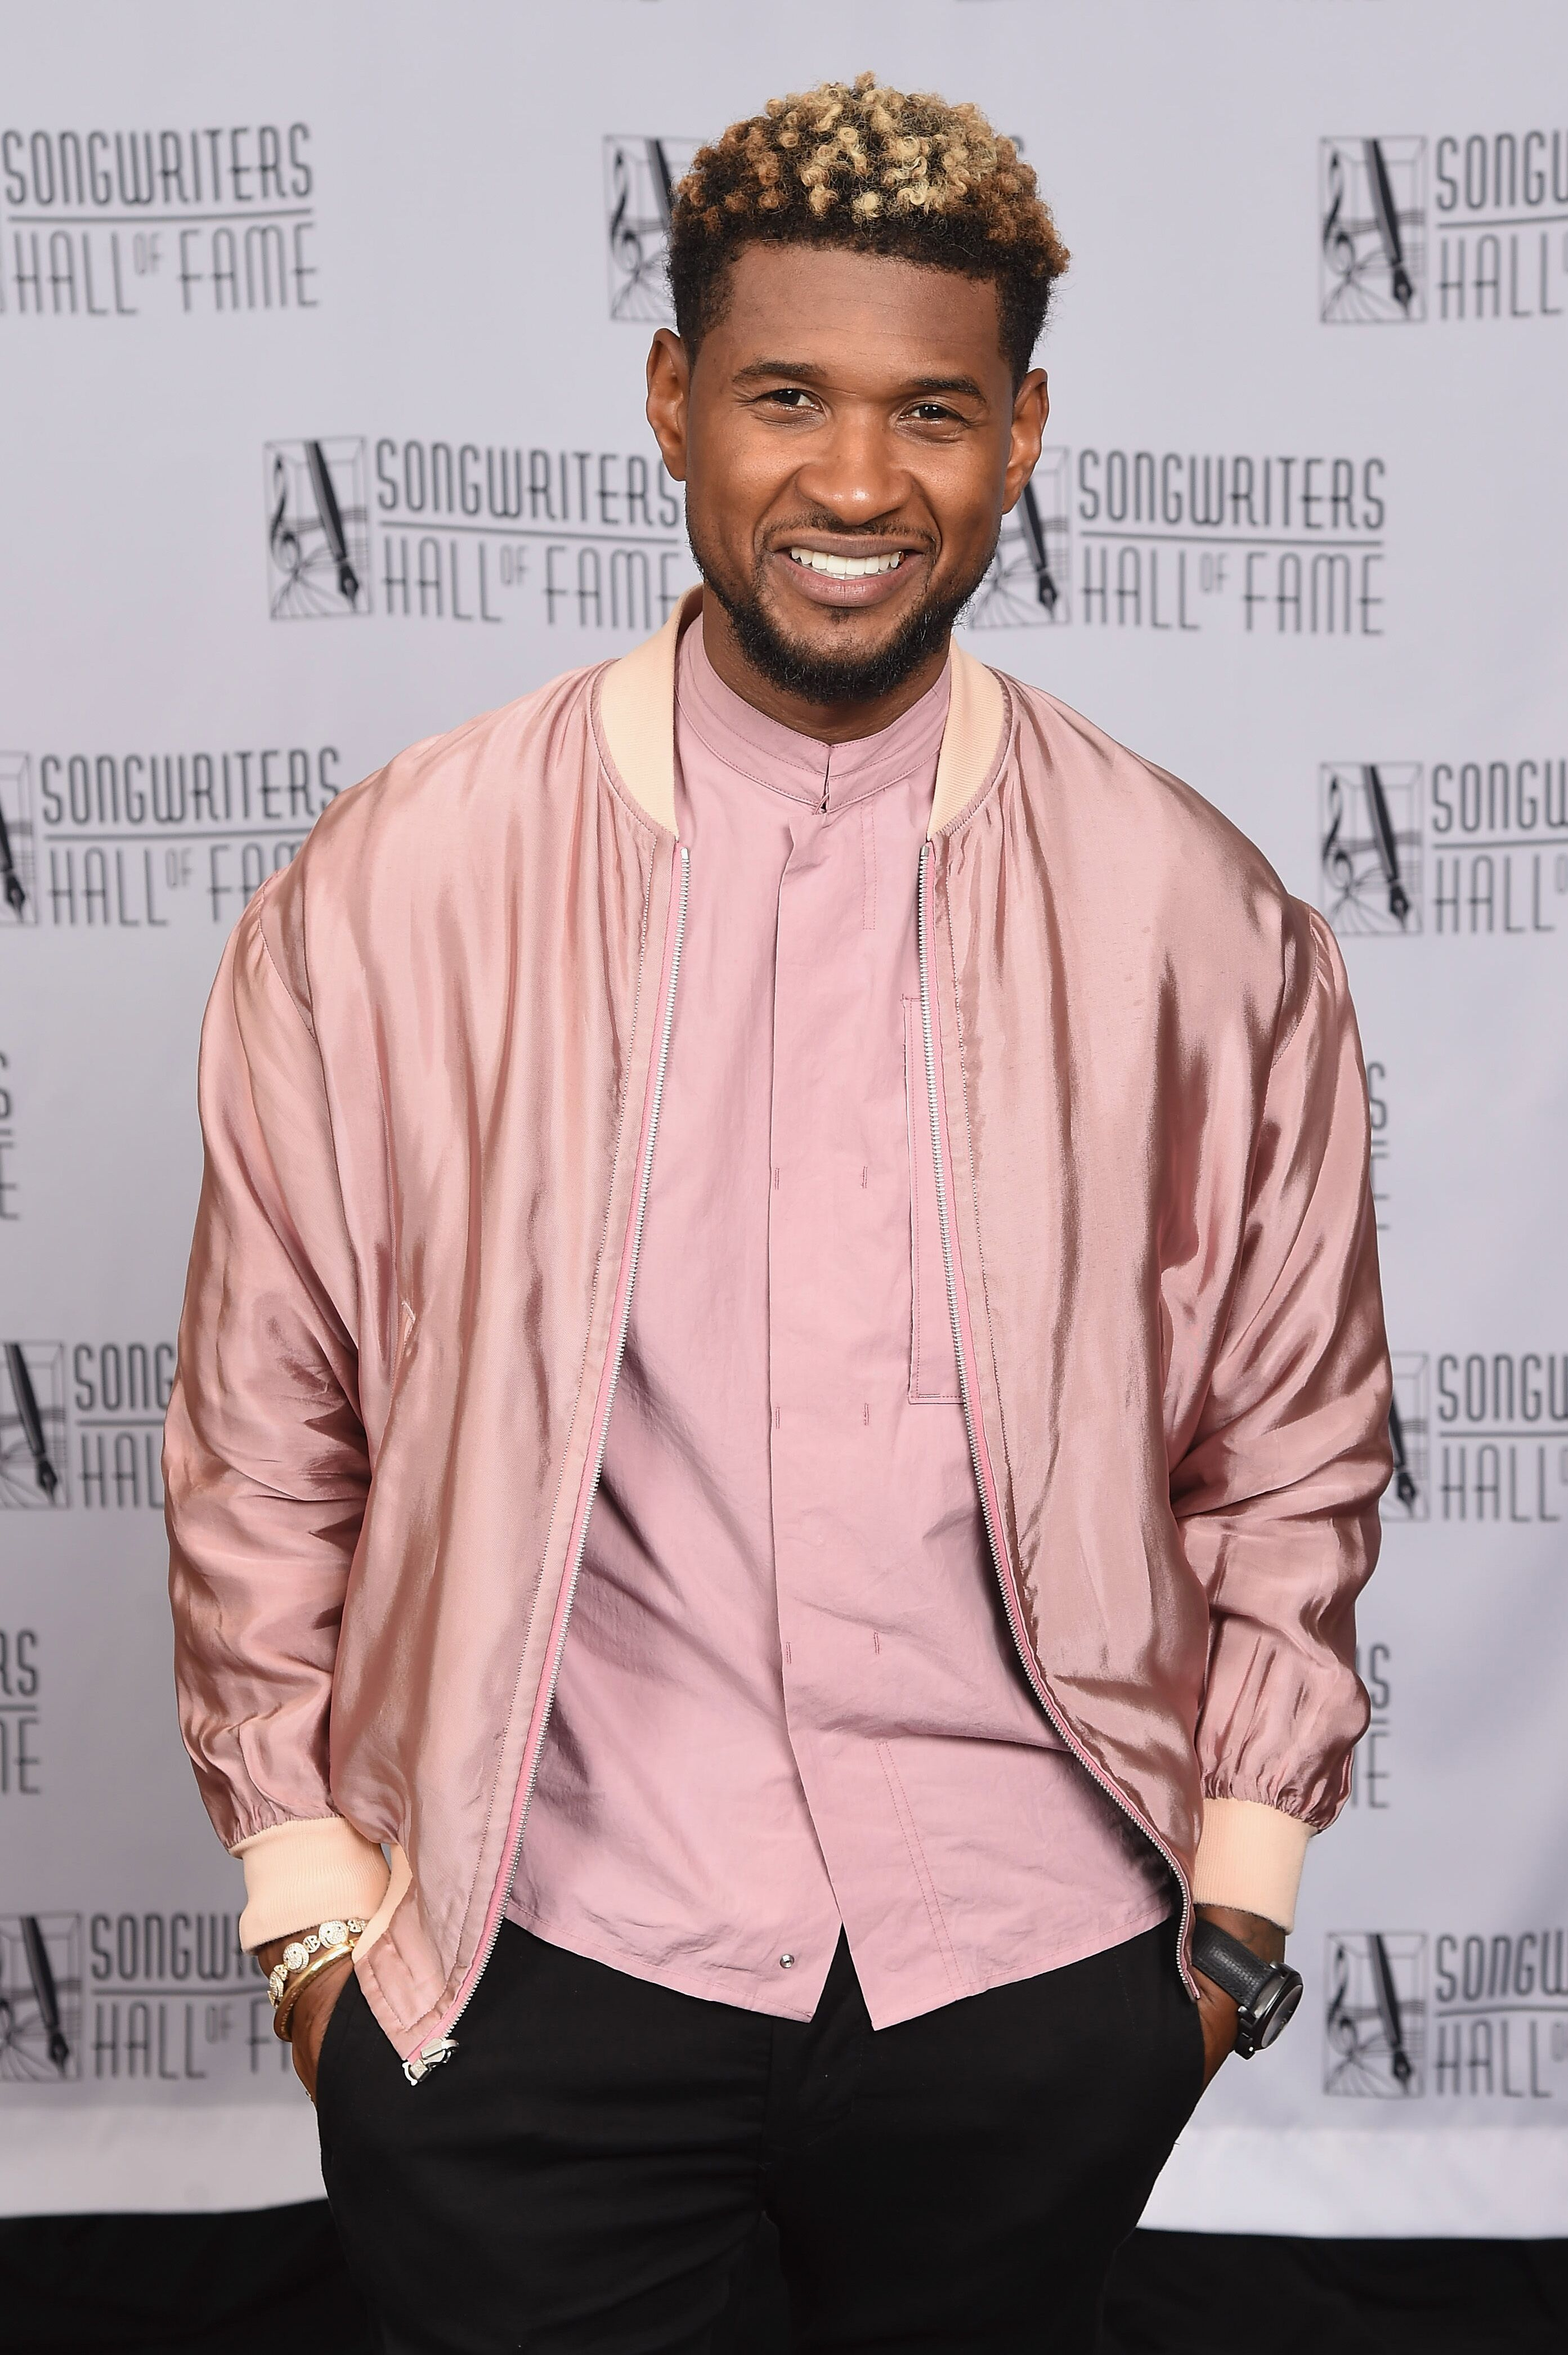 Usher Raymond st the Songwriter's Hall of Fame/ Source: Getty Images